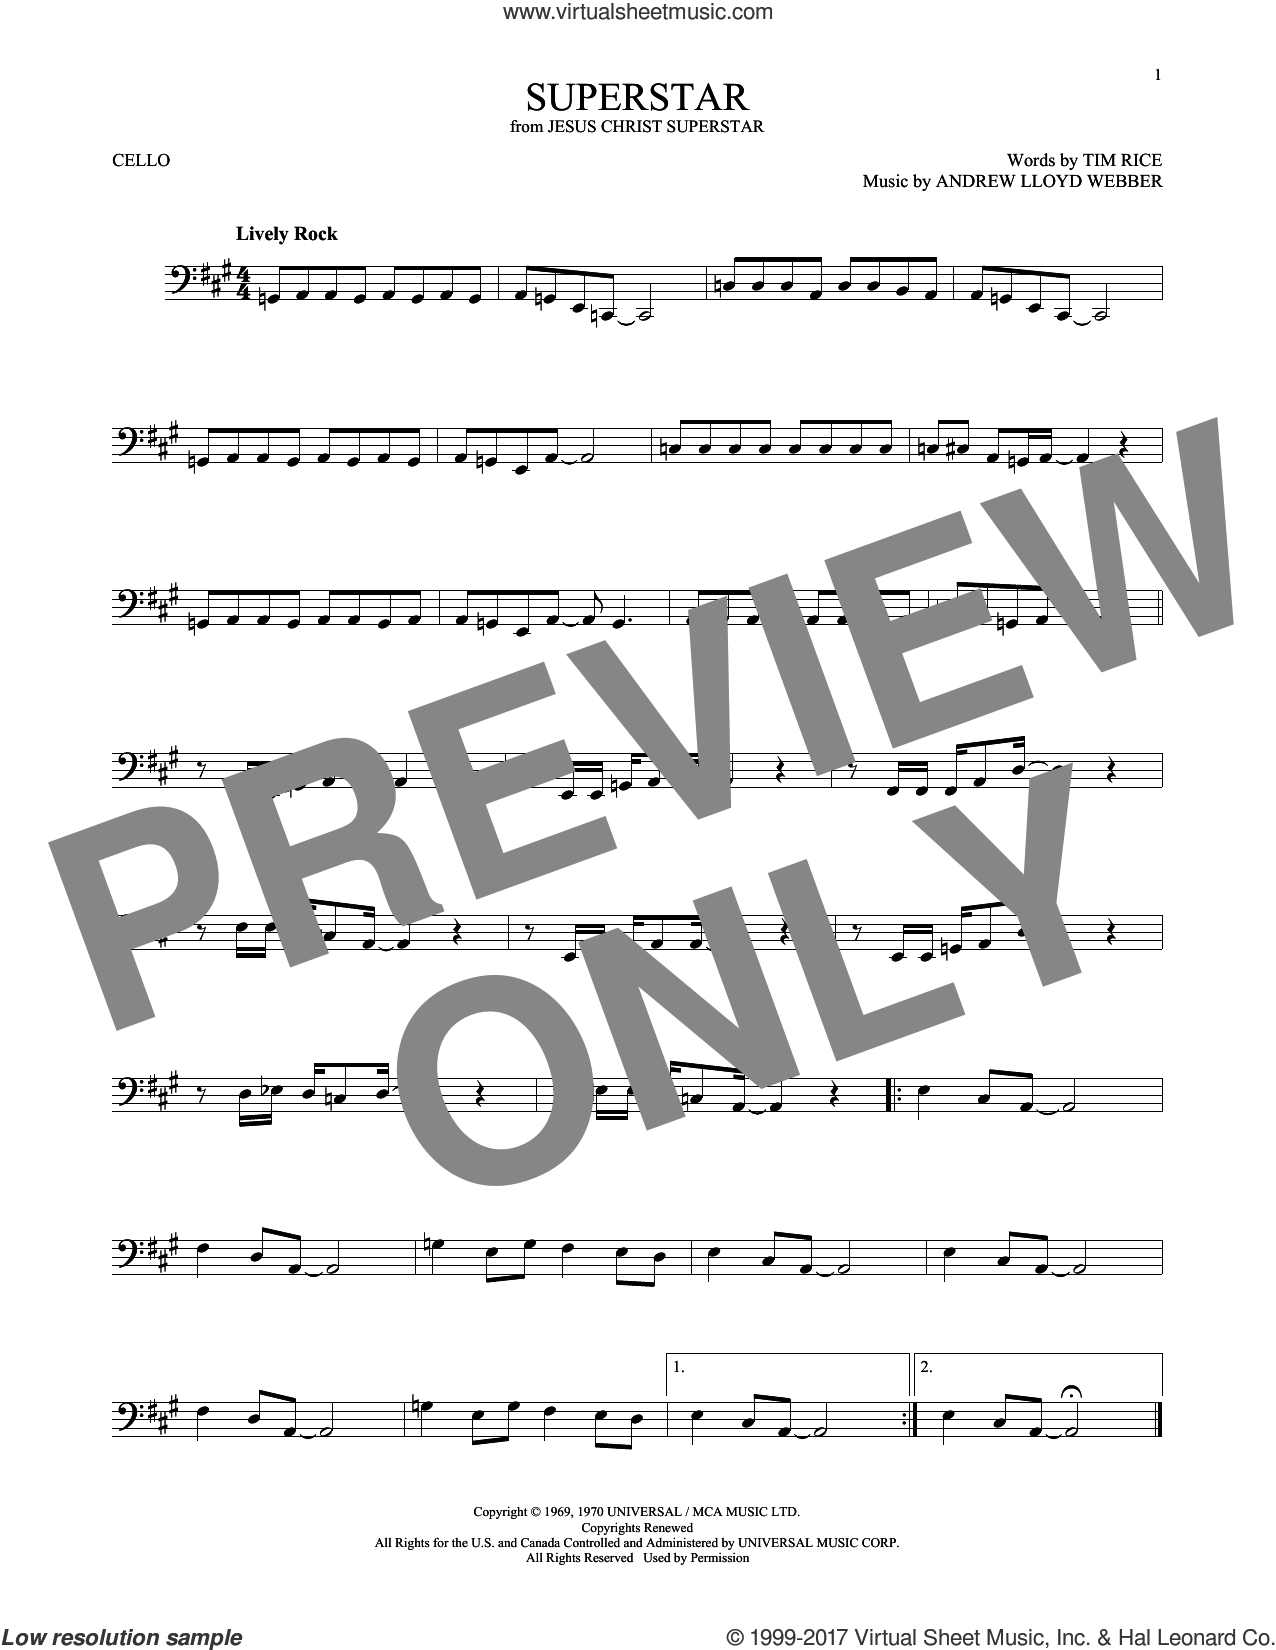 Superstar (from Jesus Christ Superstar) sheet music for cello solo by Andrew Lloyd Webber, Murray Head w/Trinidad Singers and Tim Rice, intermediate skill level